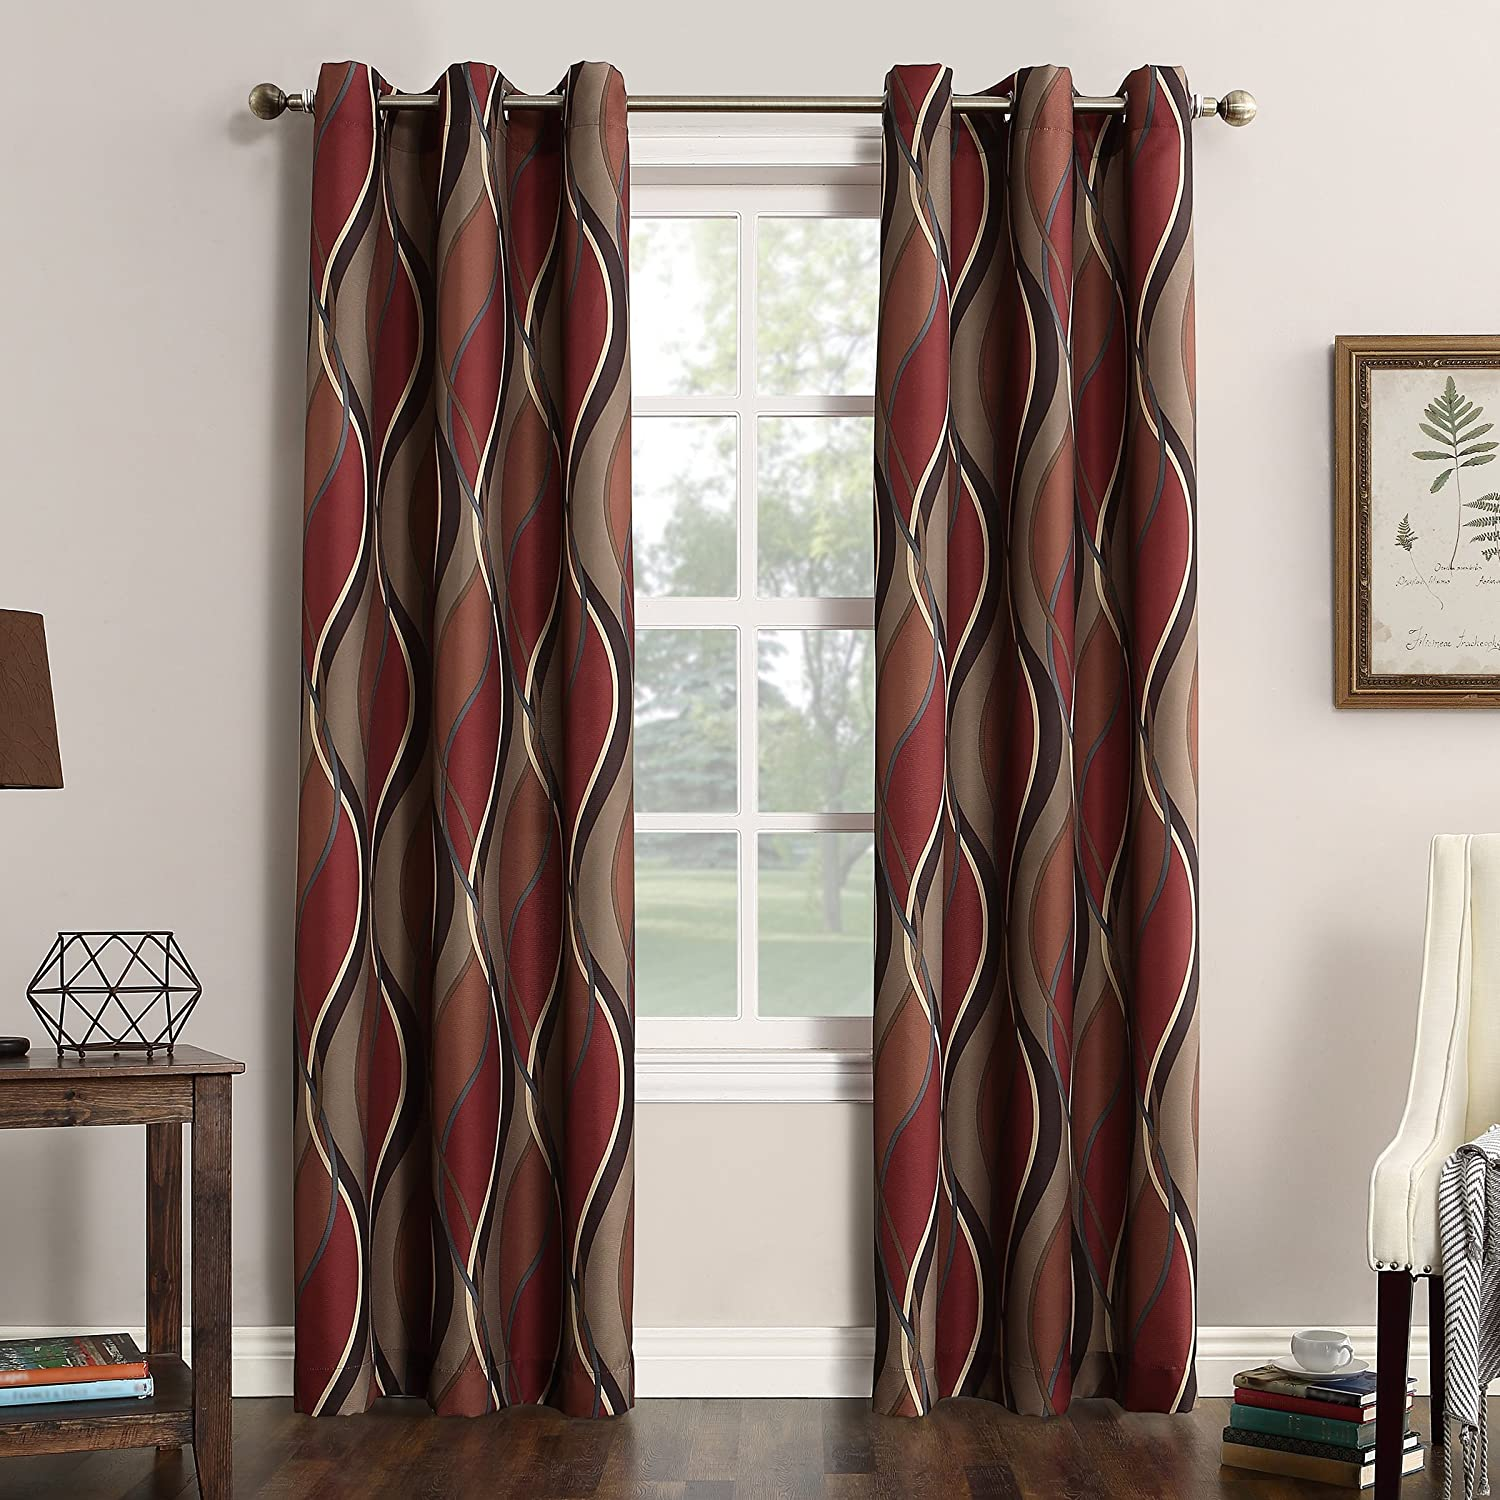 Amazon Com No 918 Intersect Wave Print Casual Textured Curtain Panel Paprika 48 X 84 Home Kitchen